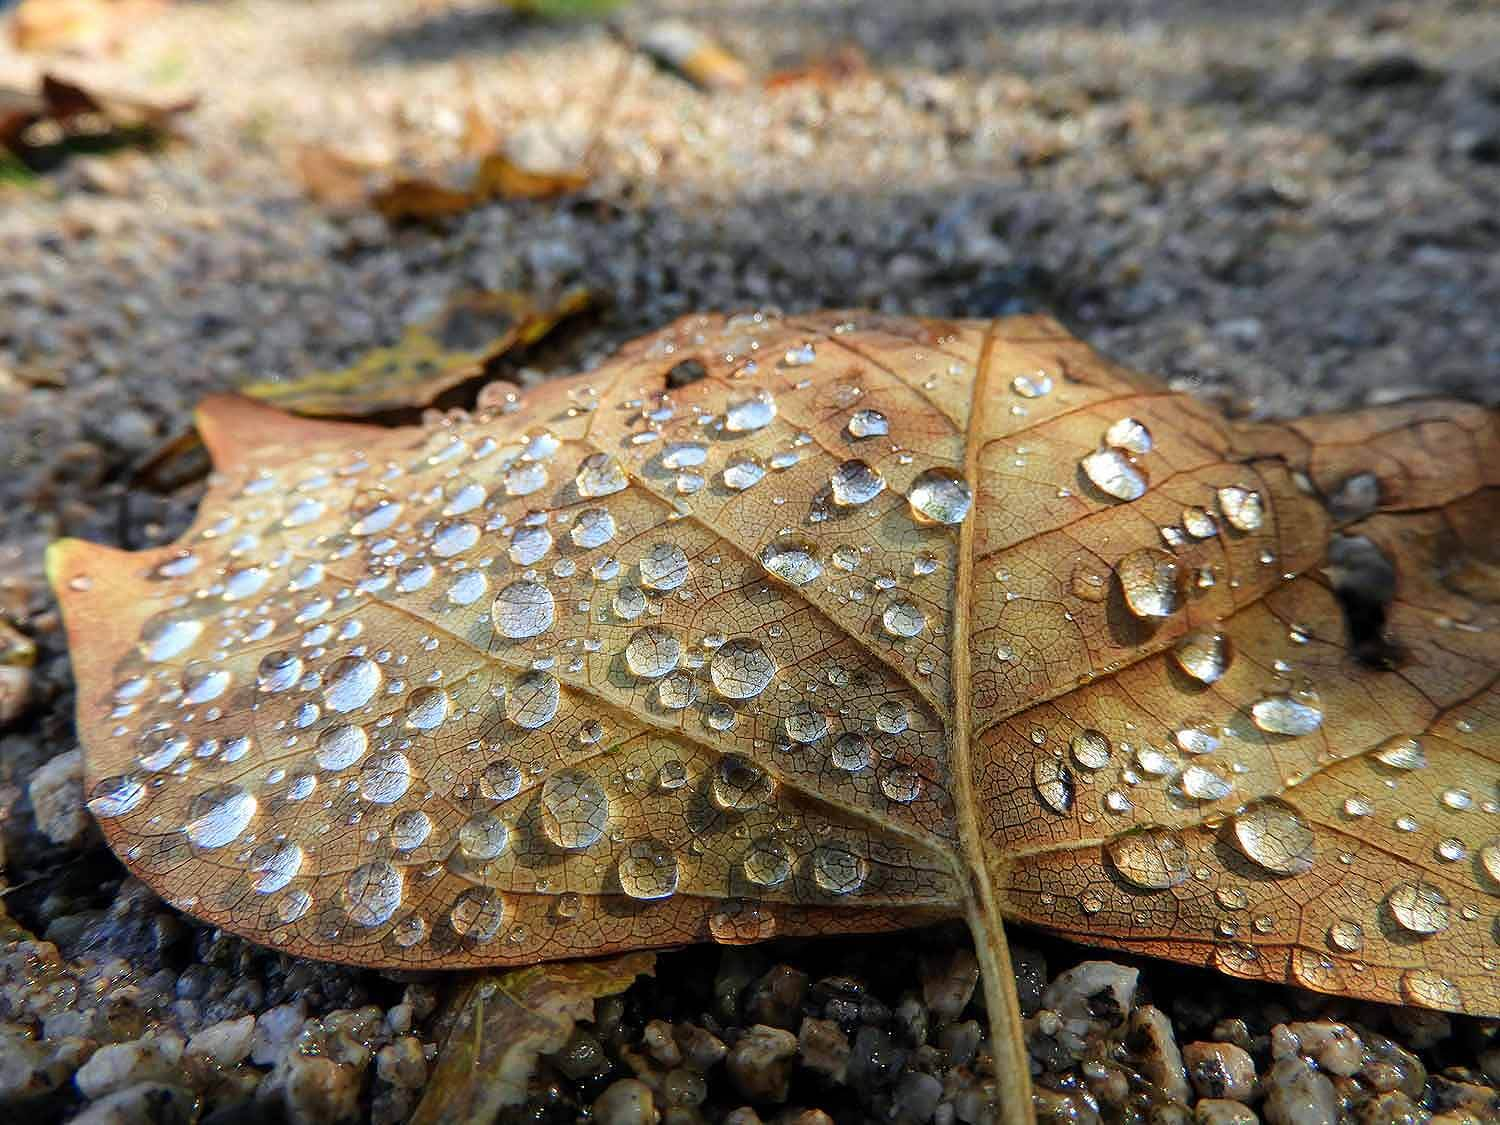 france-epinal-leaf-water-drops-macro-photography.jpg